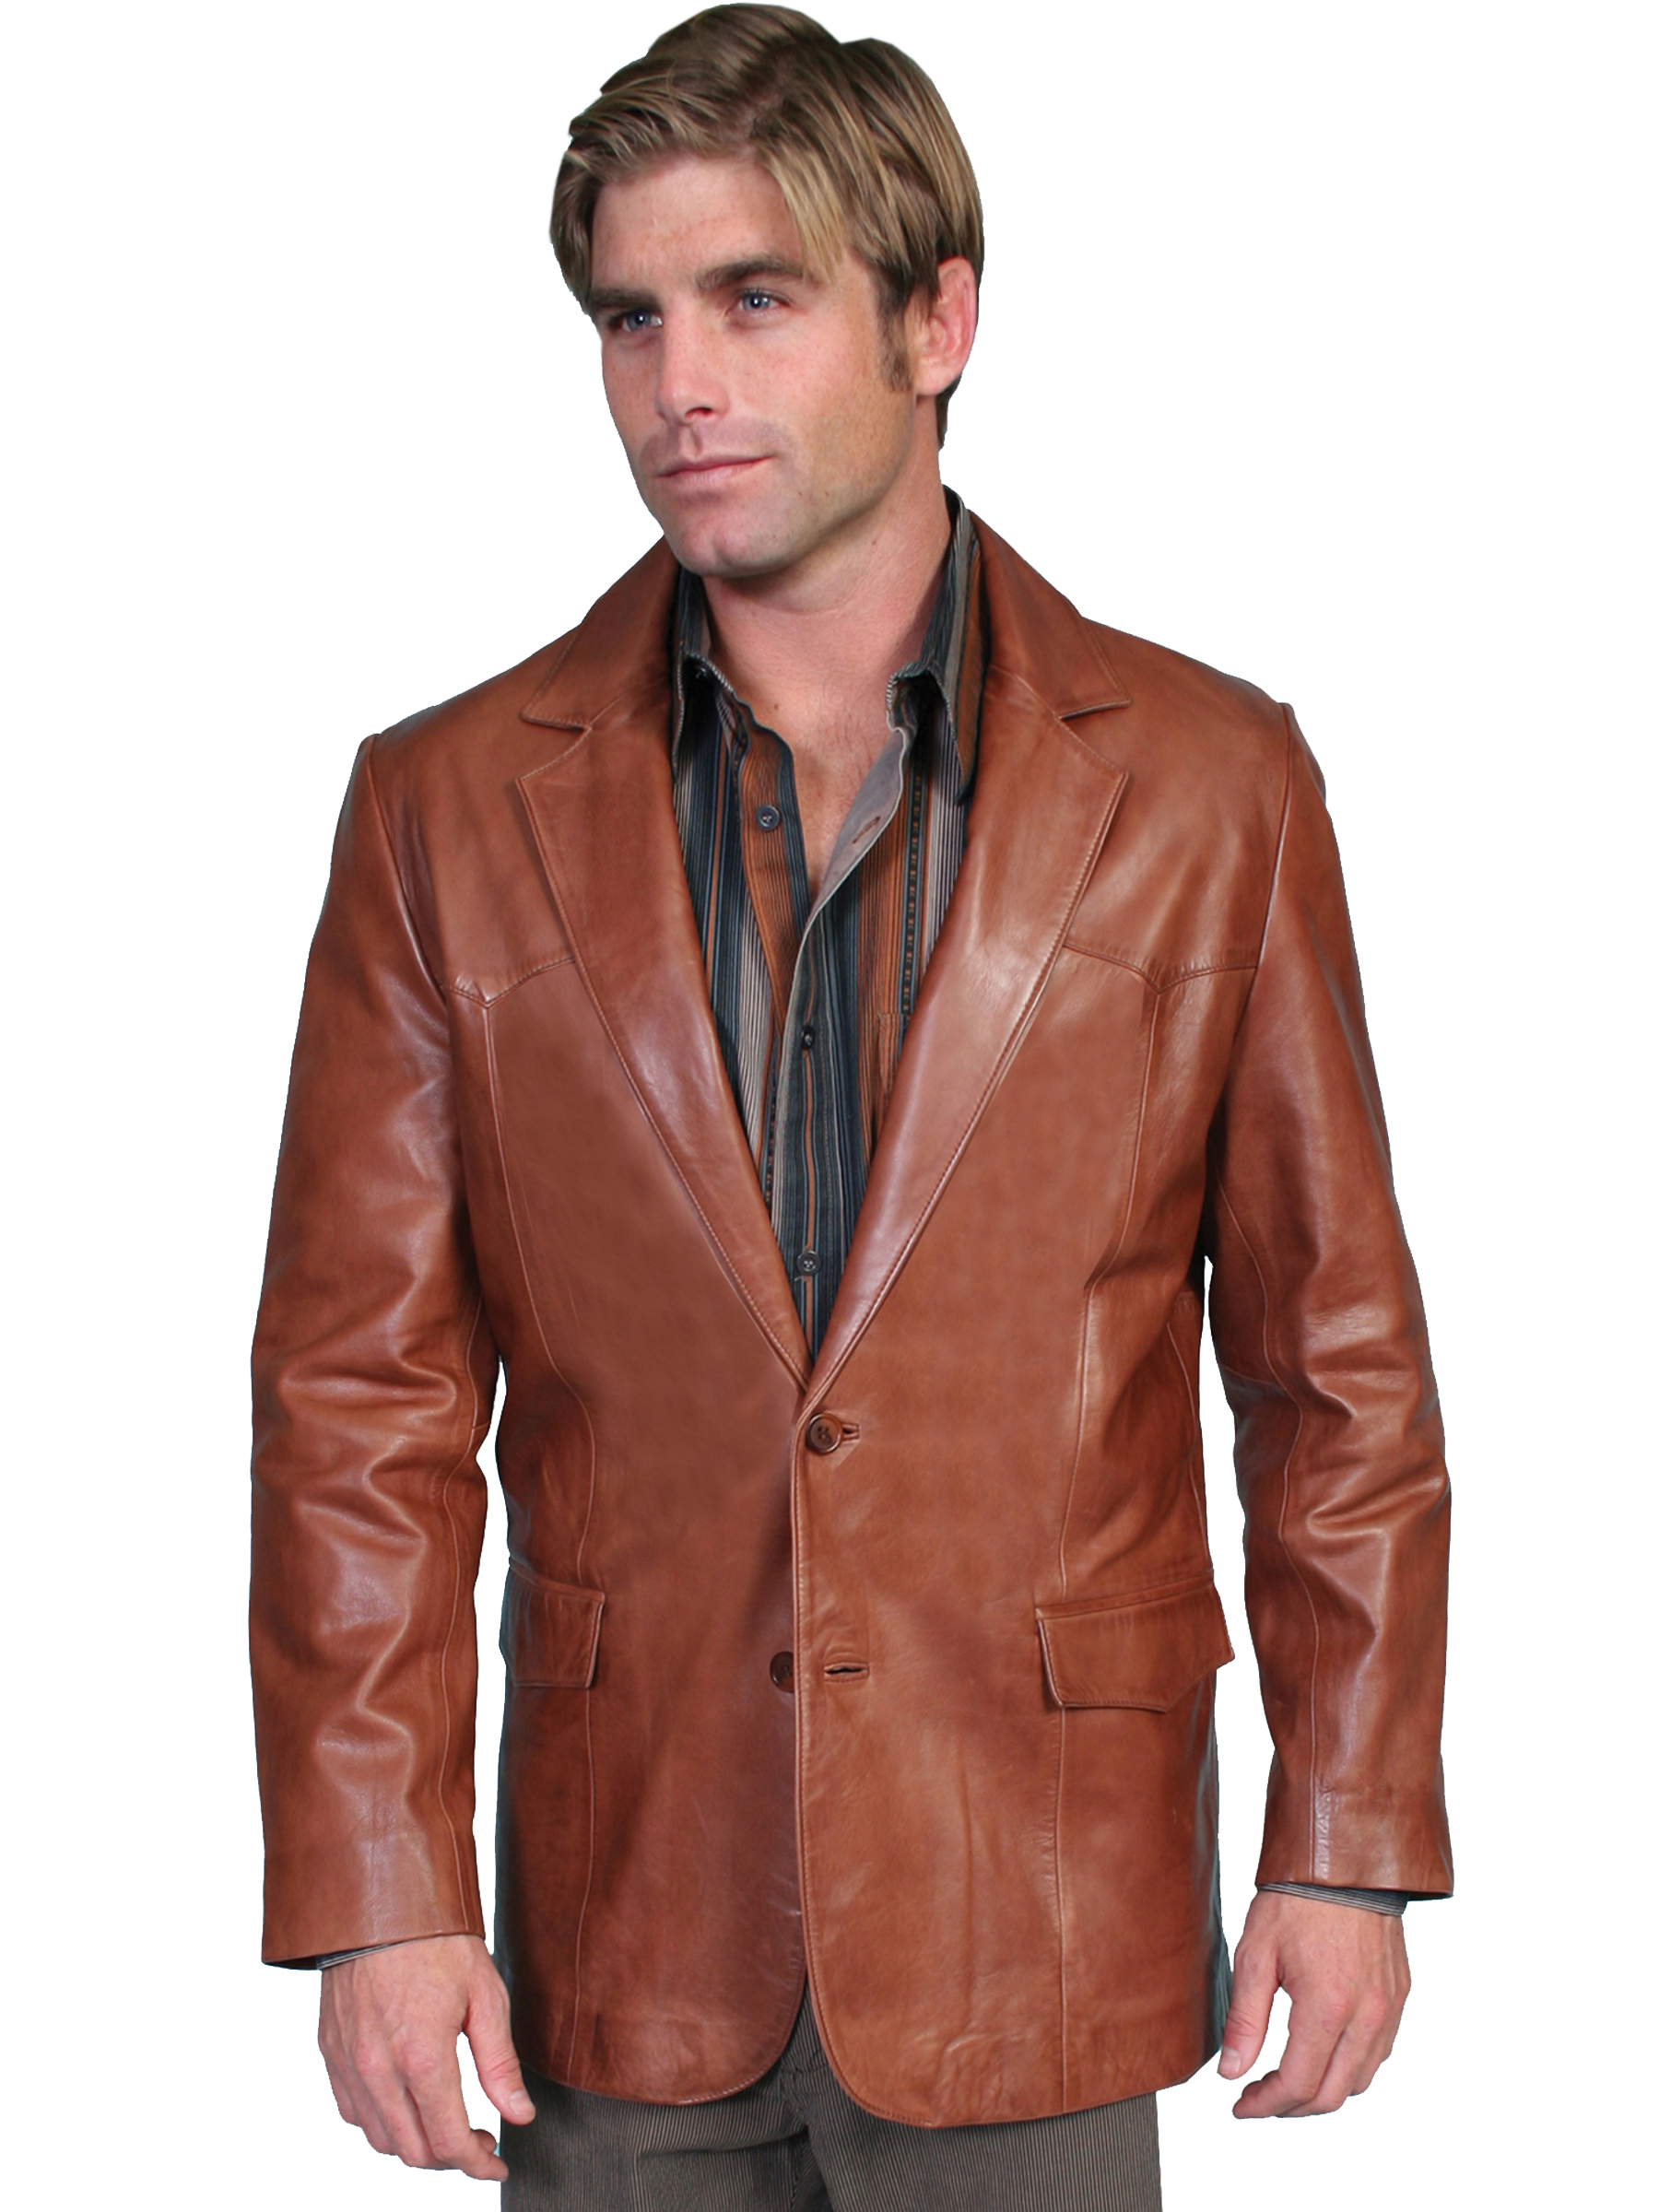 ffa8459e Scully Leather; Western and Contemporary Clothing and Accessories